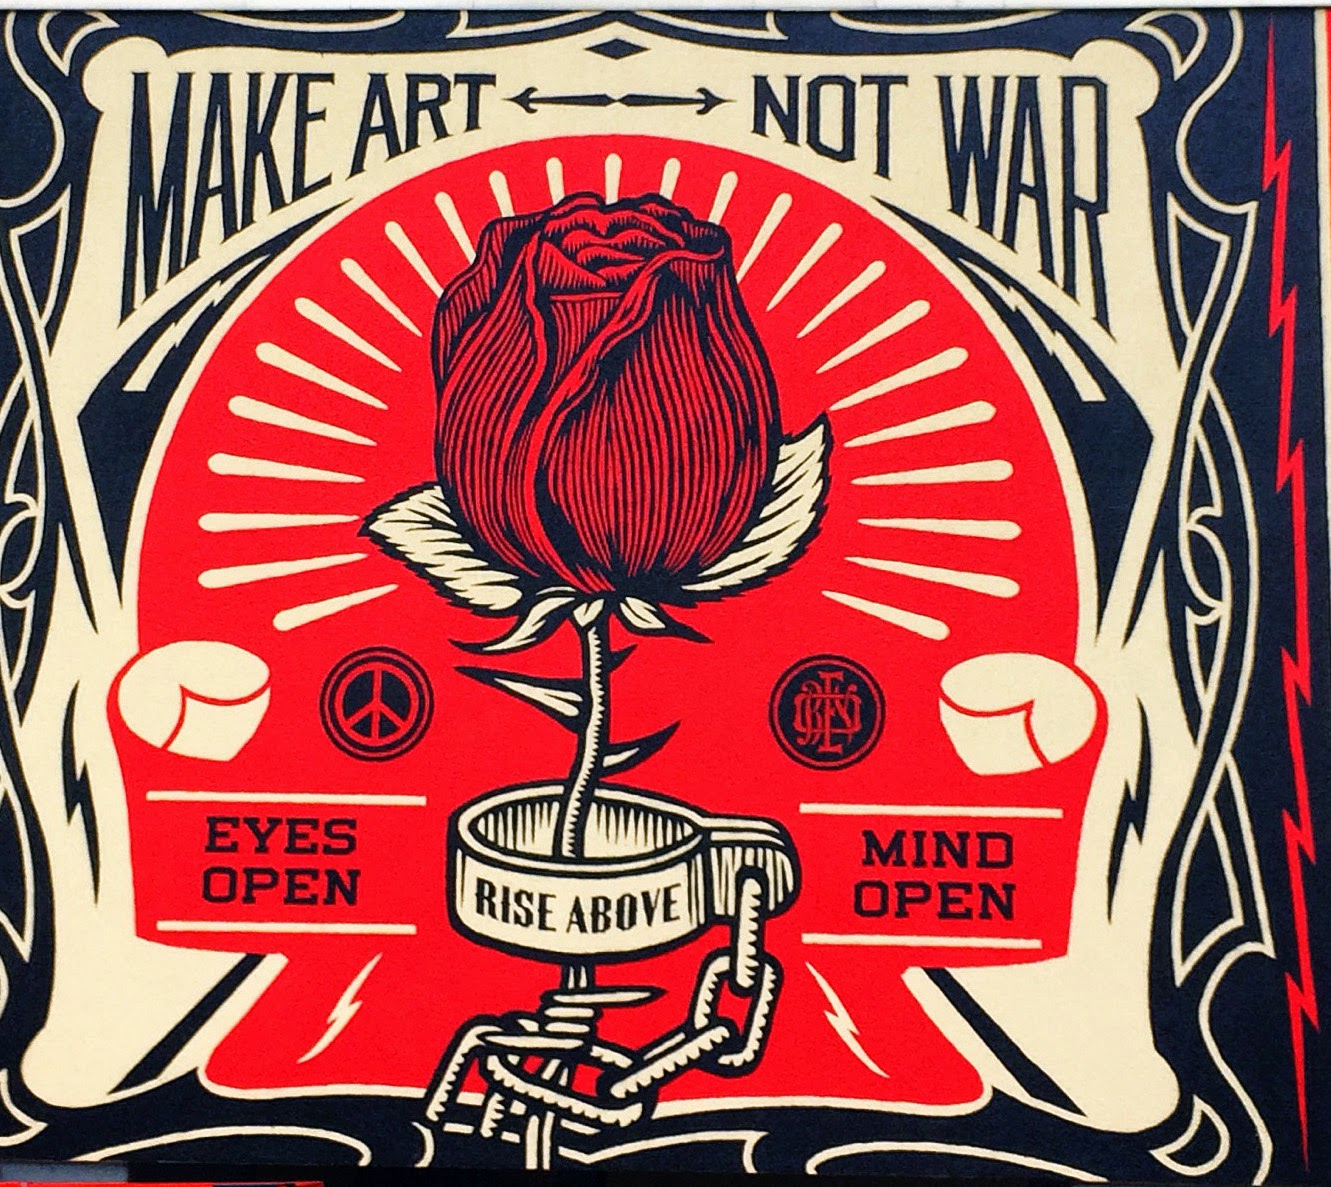 Giant Wall Mural Stickers Shepard Fairey Unveils Quot Make Art Not War Quot For Urban Nation